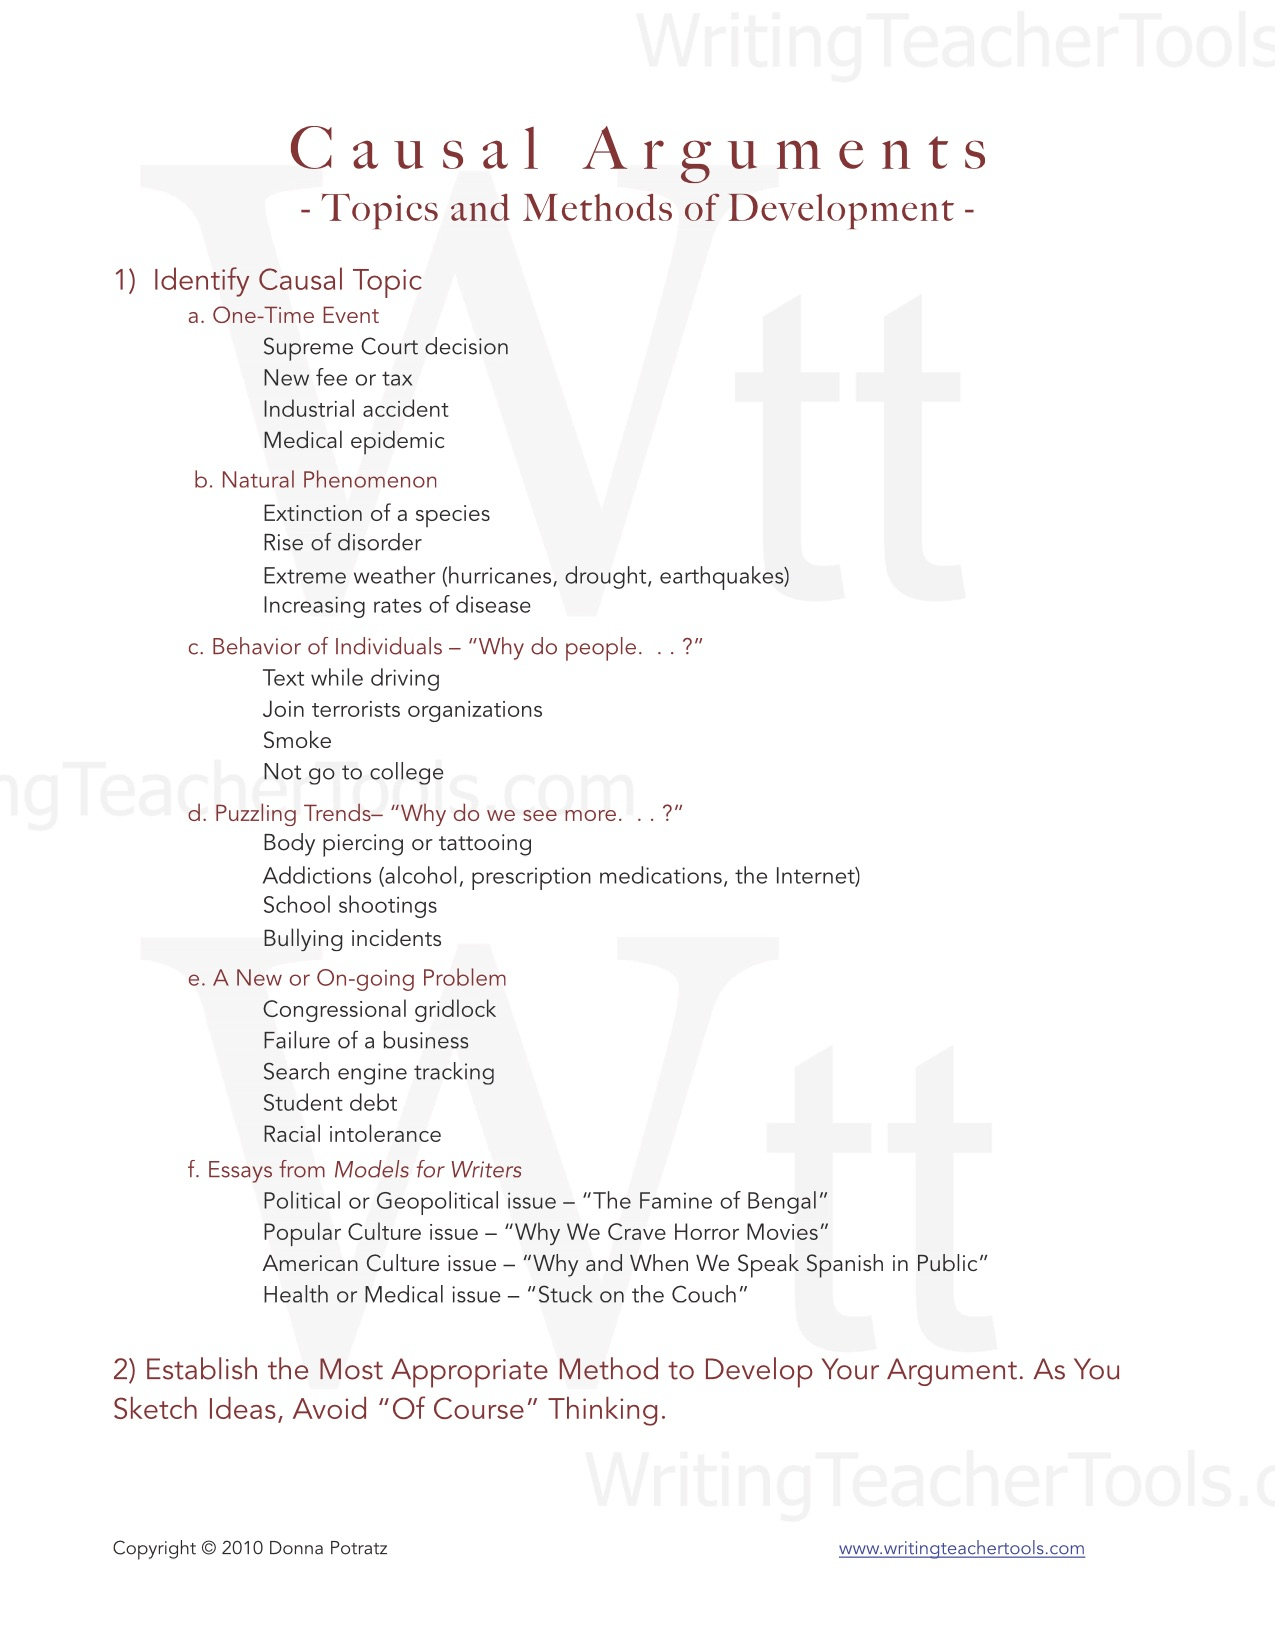 002 Proposal Essay Topics List Causal Oglasico Ofntative For Middle Schoolnt And Methods Develo Great Gatsby Easyntativepersuasive Research College Good Example Imposing Argument Topic Ideas Full